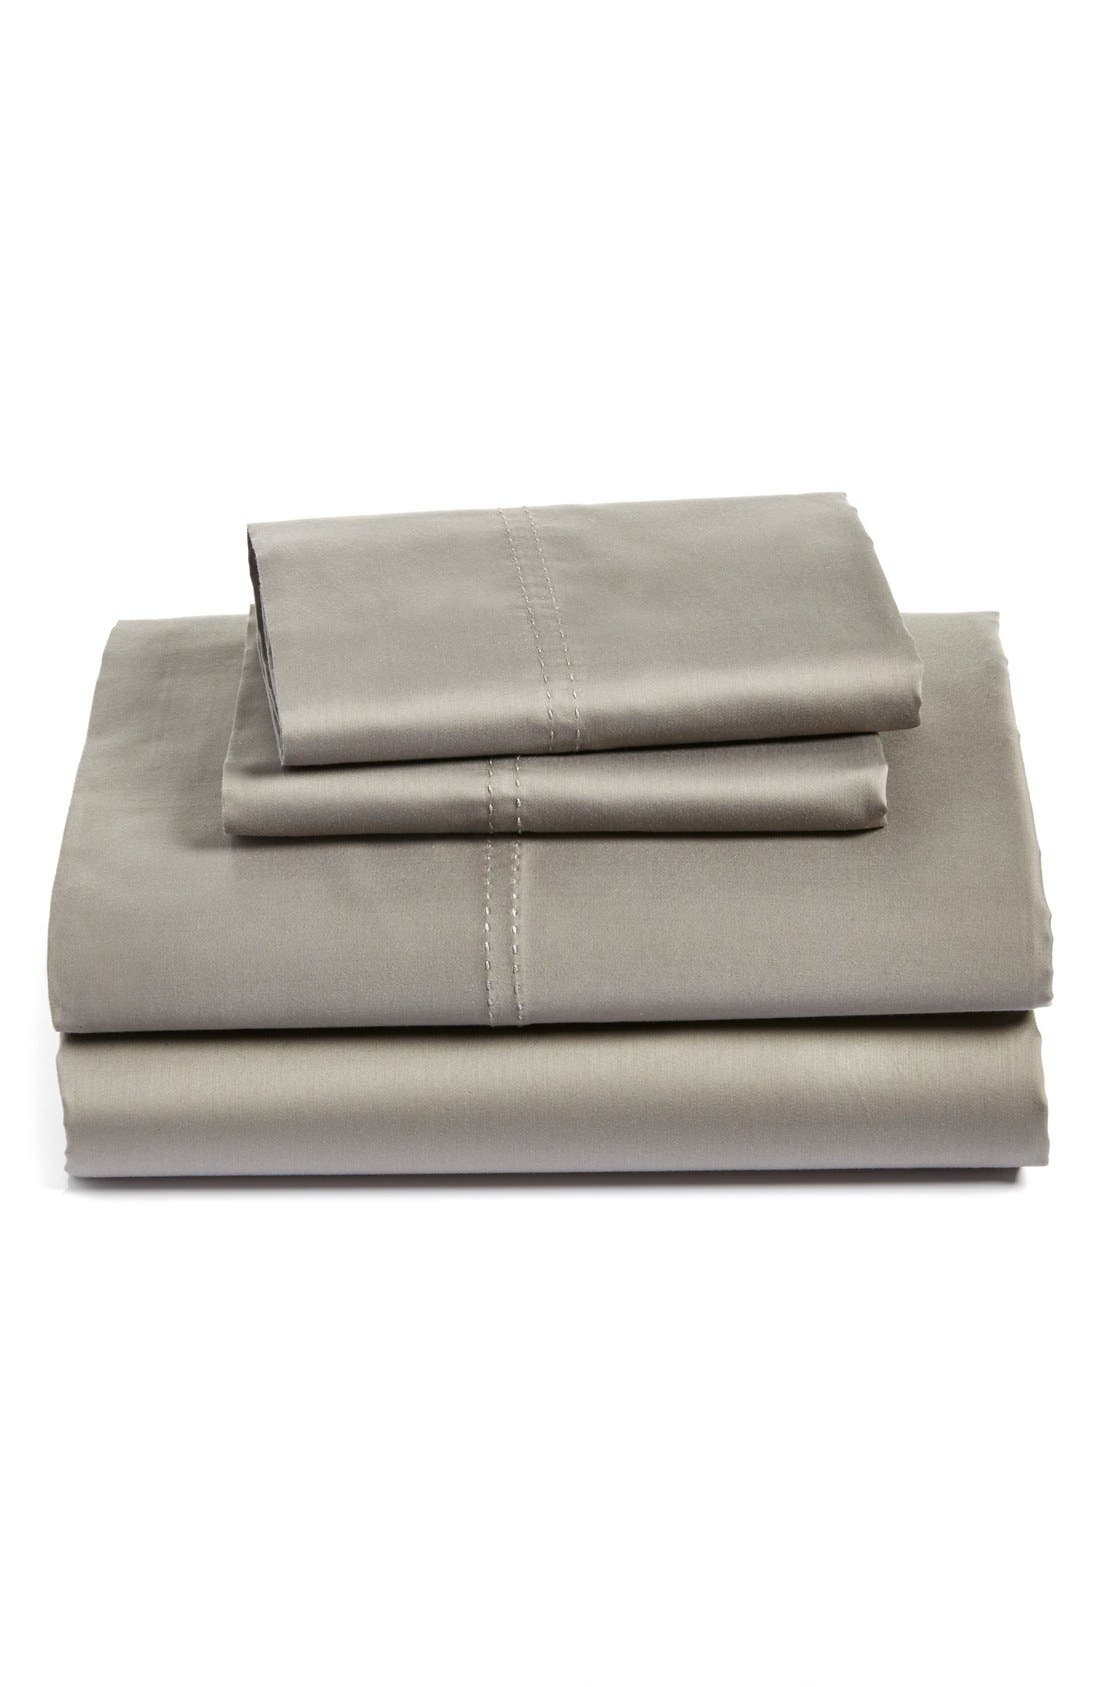 Nordstrom at Home 400 Thread Count Sheet Set